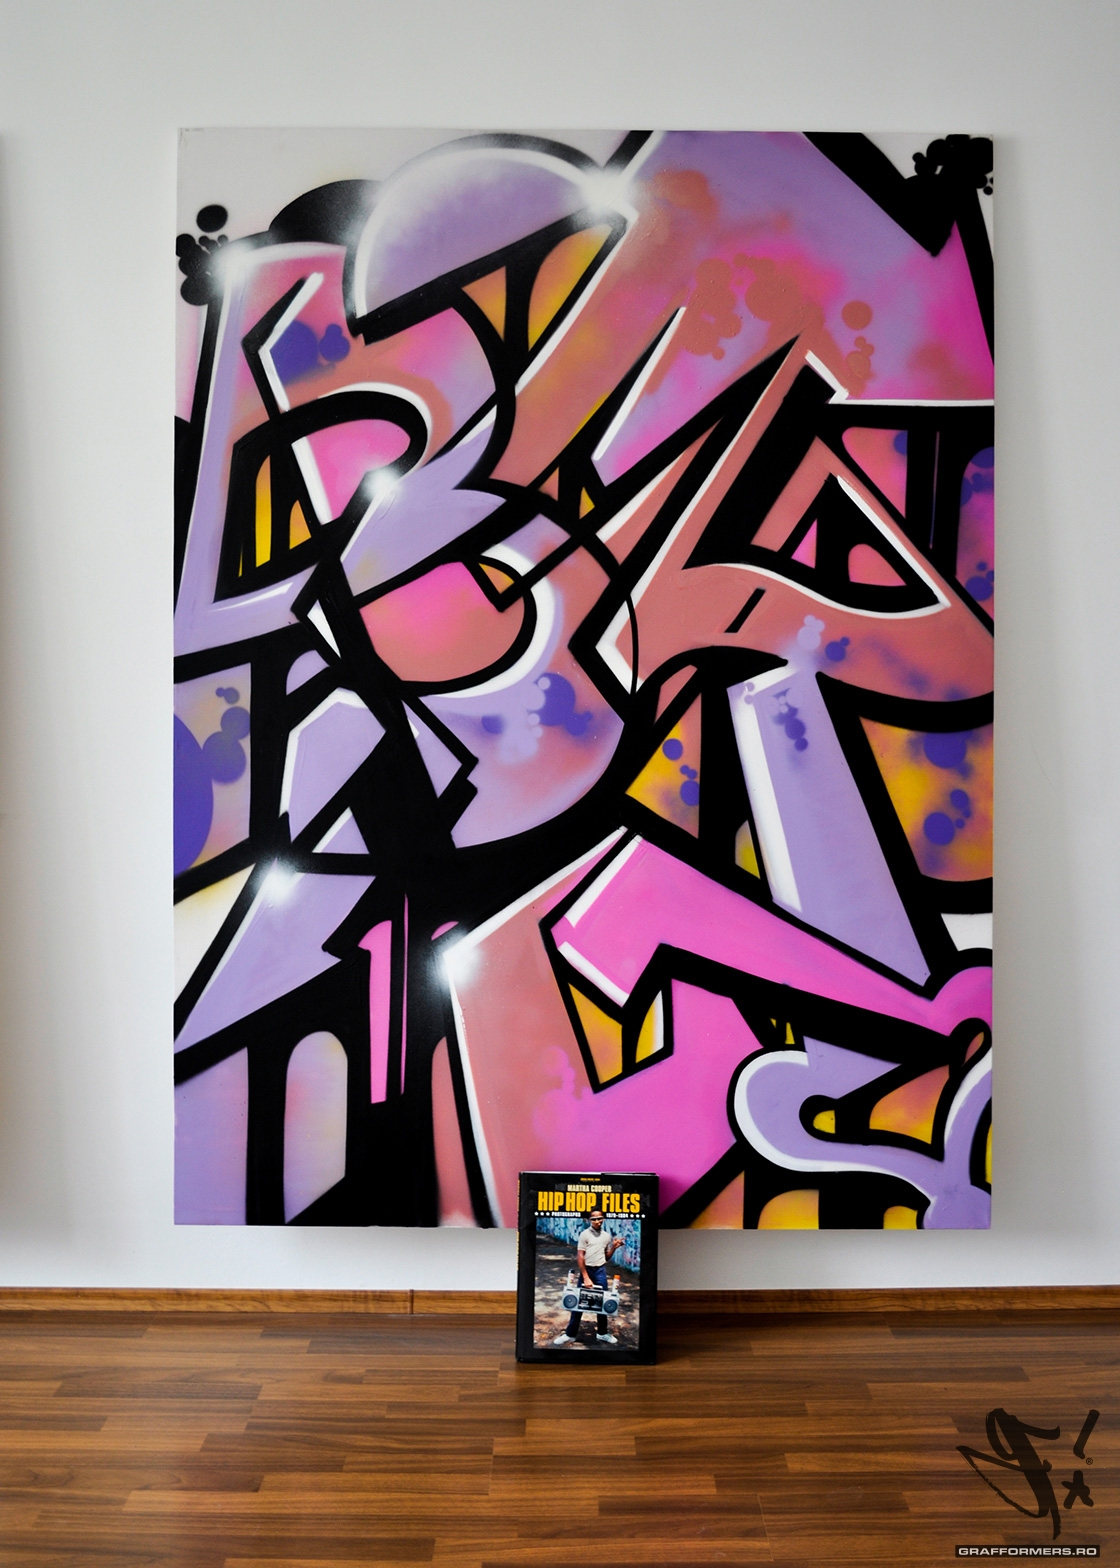 04-20130828-custom_graffiti_canvas_for_bboy_bogdan_blmnt-marghita-bihor-grafformers_ro